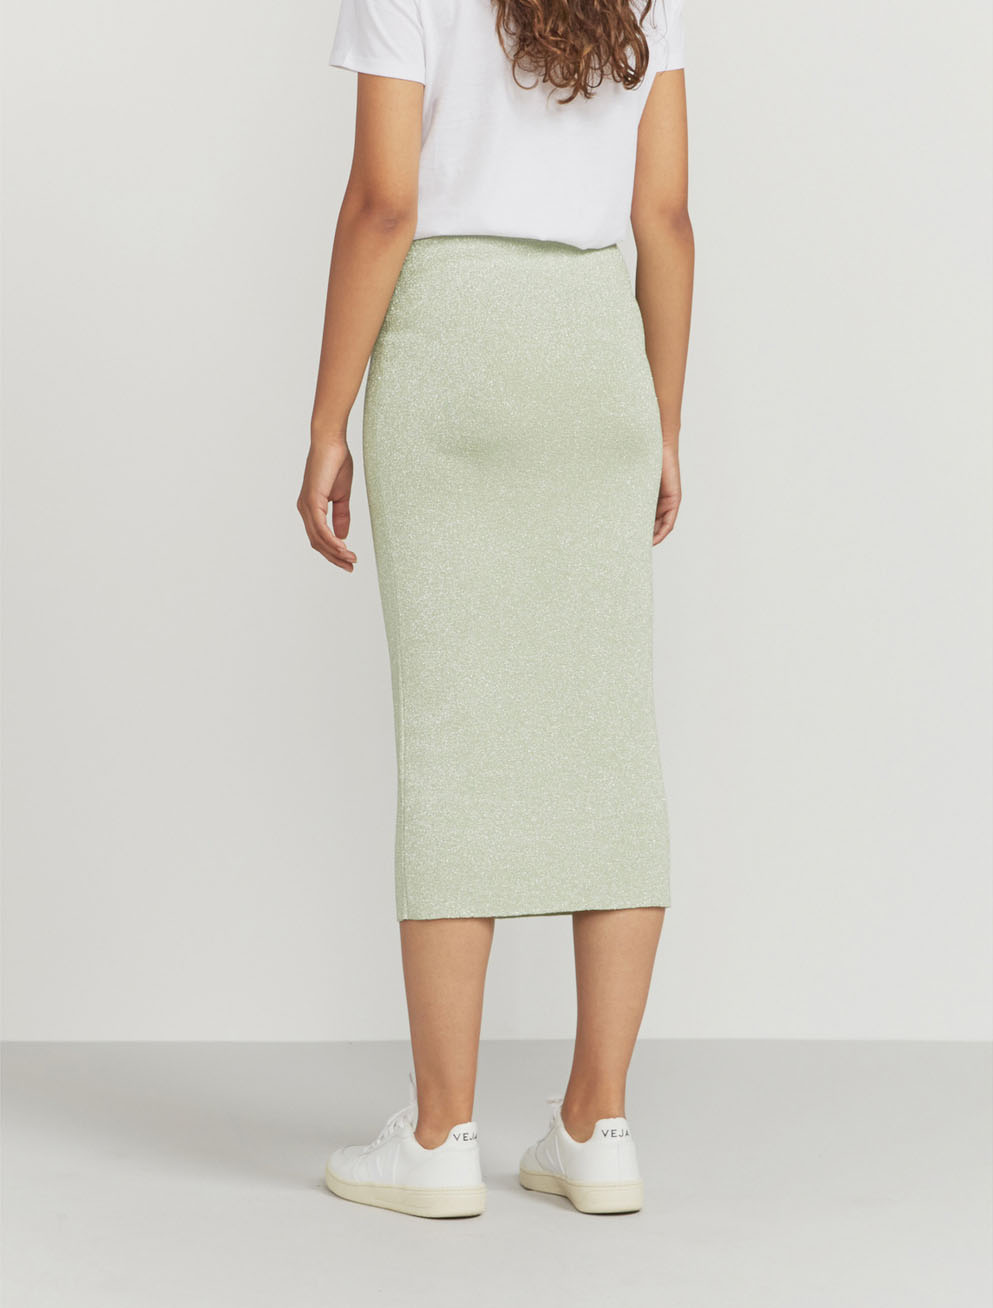 Lurex knit midi skirt